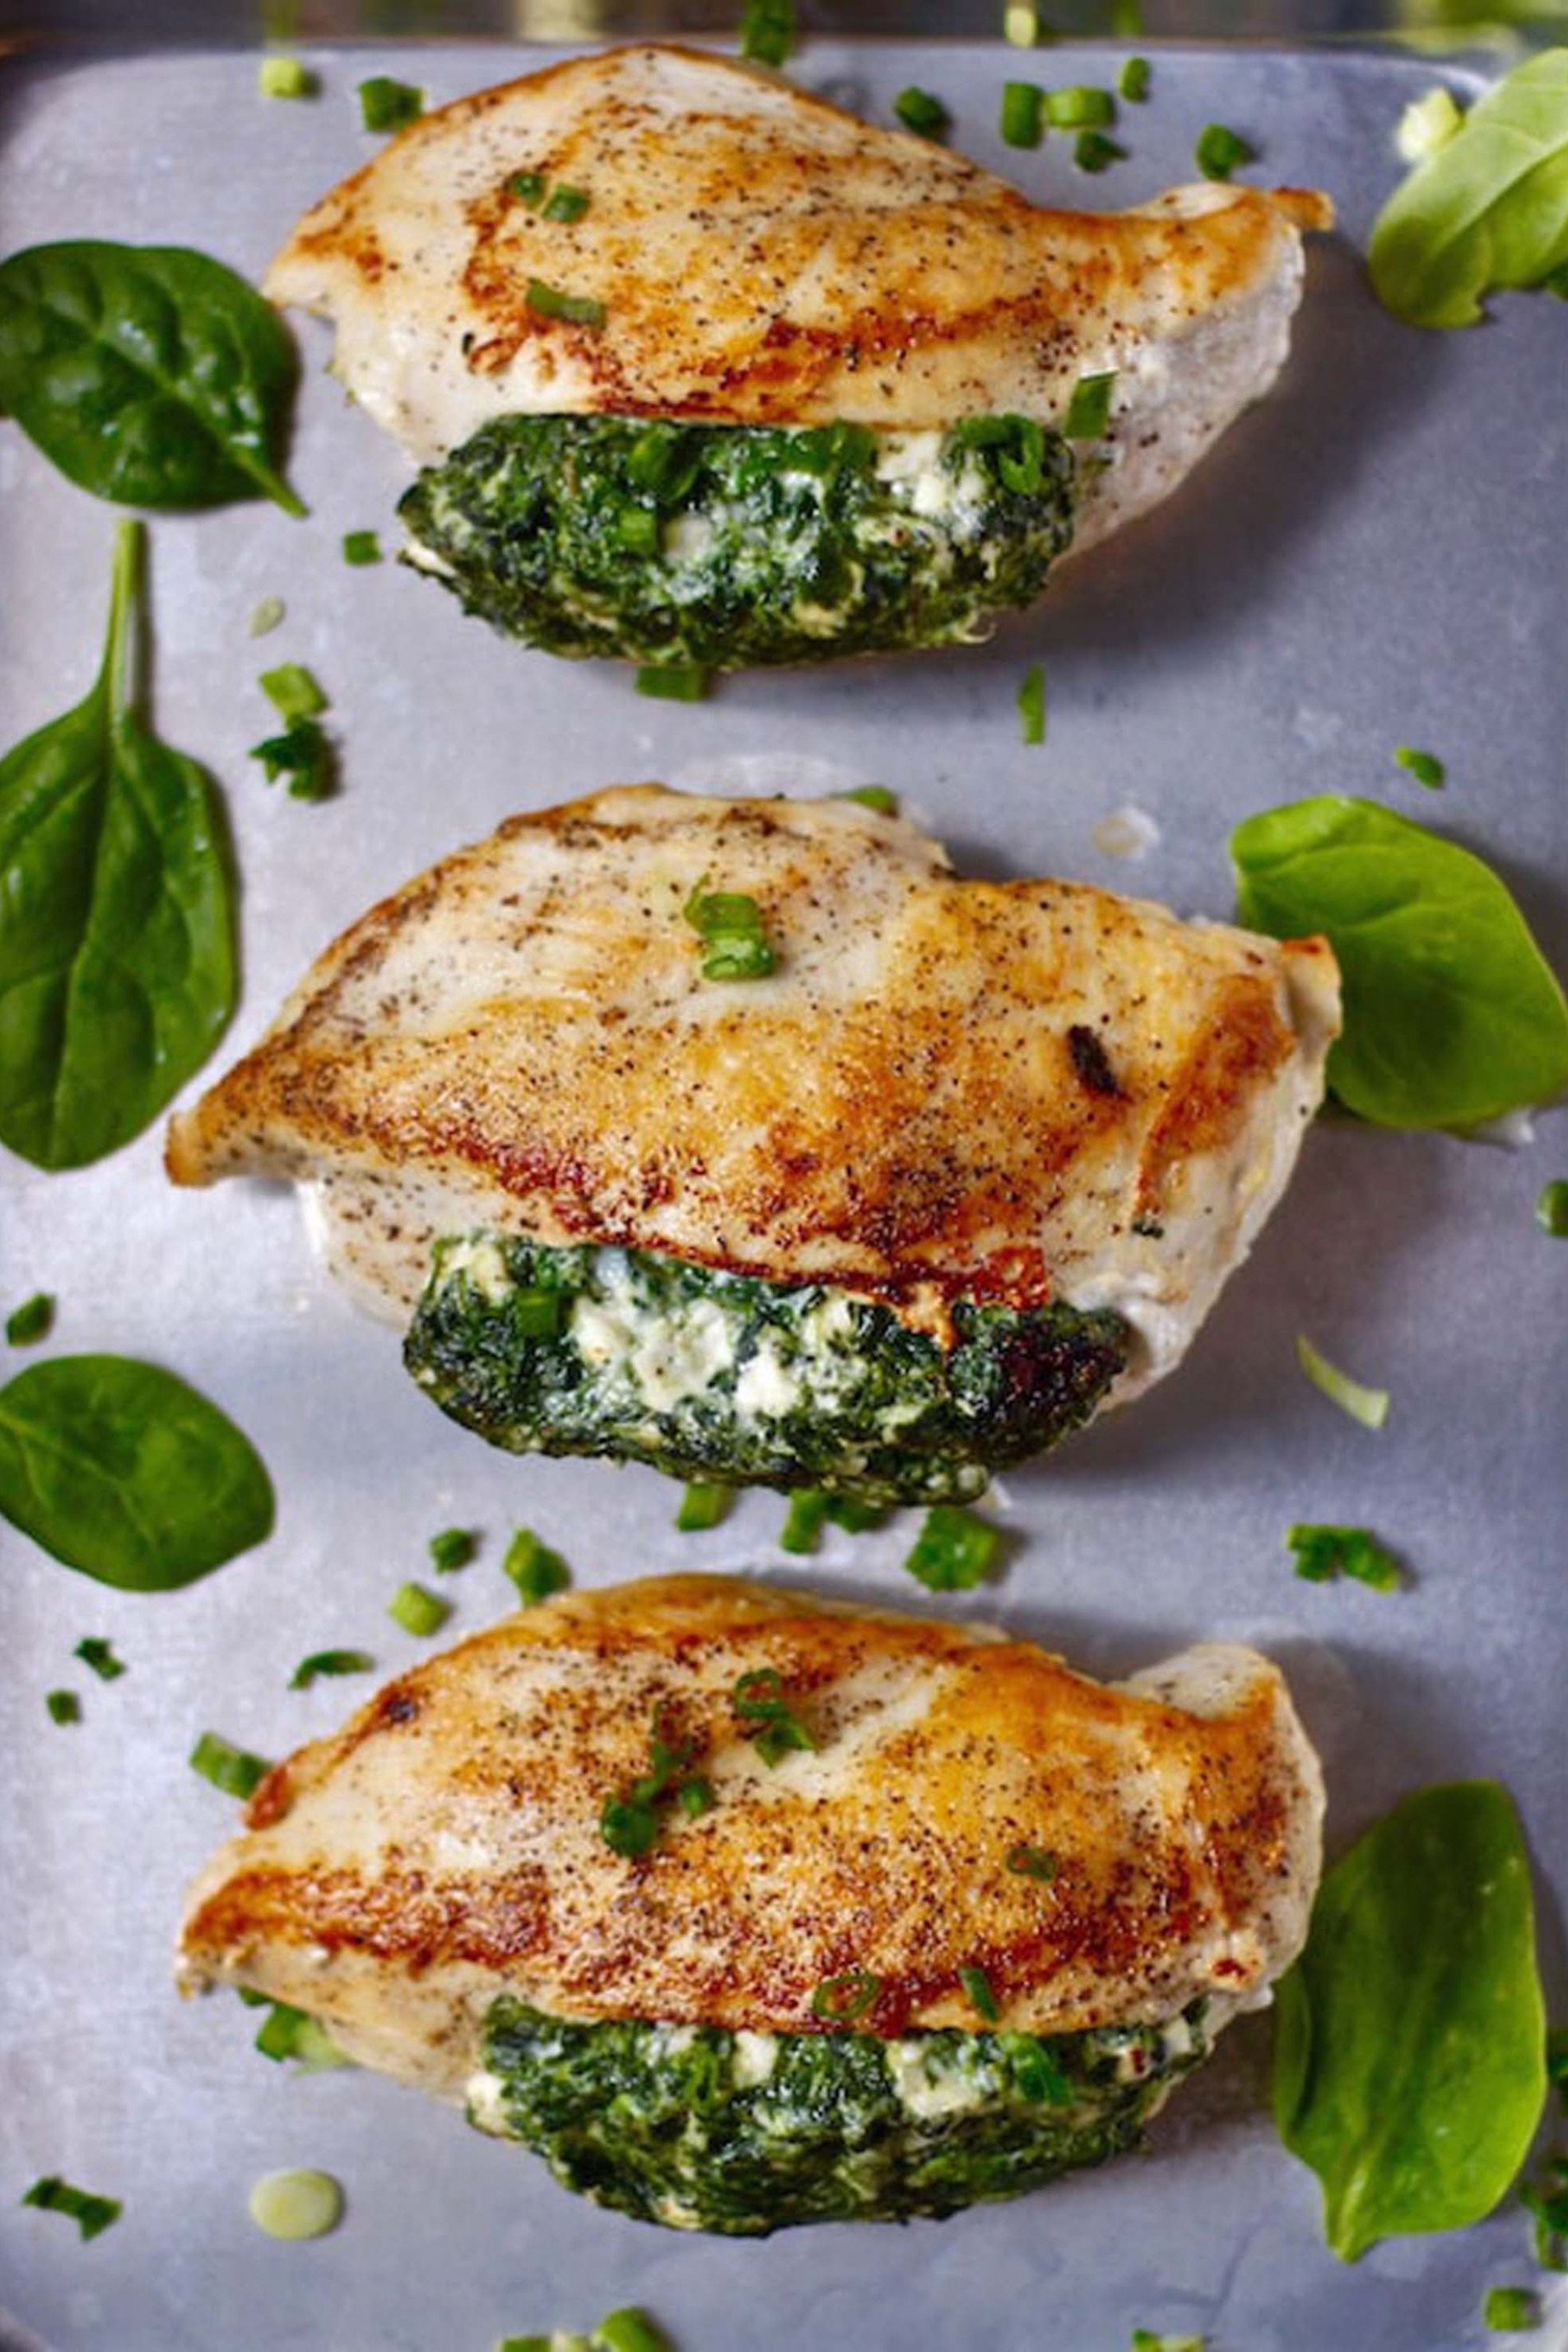 50 Easy Low-Carb Dinner Recipes - Healthy Low Carb Meals ...